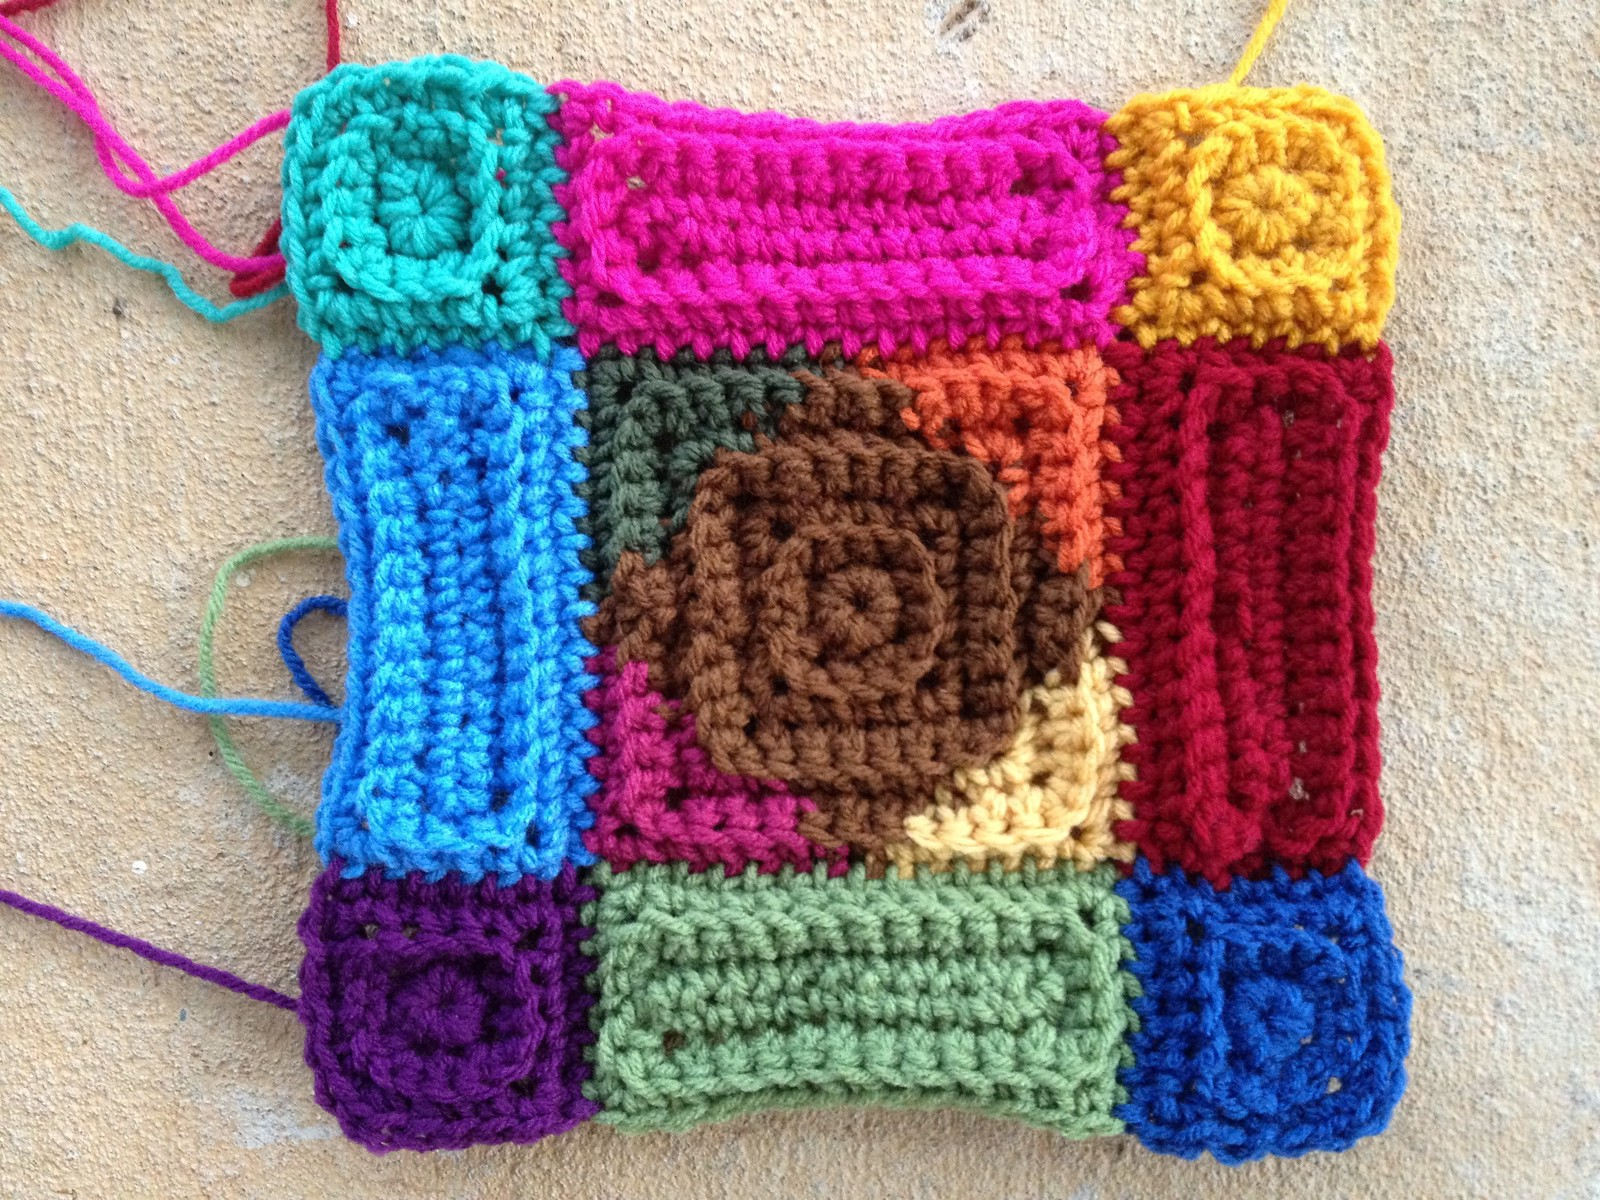 A multicolor textured square crochet motif composed of crochet squares and rectangles